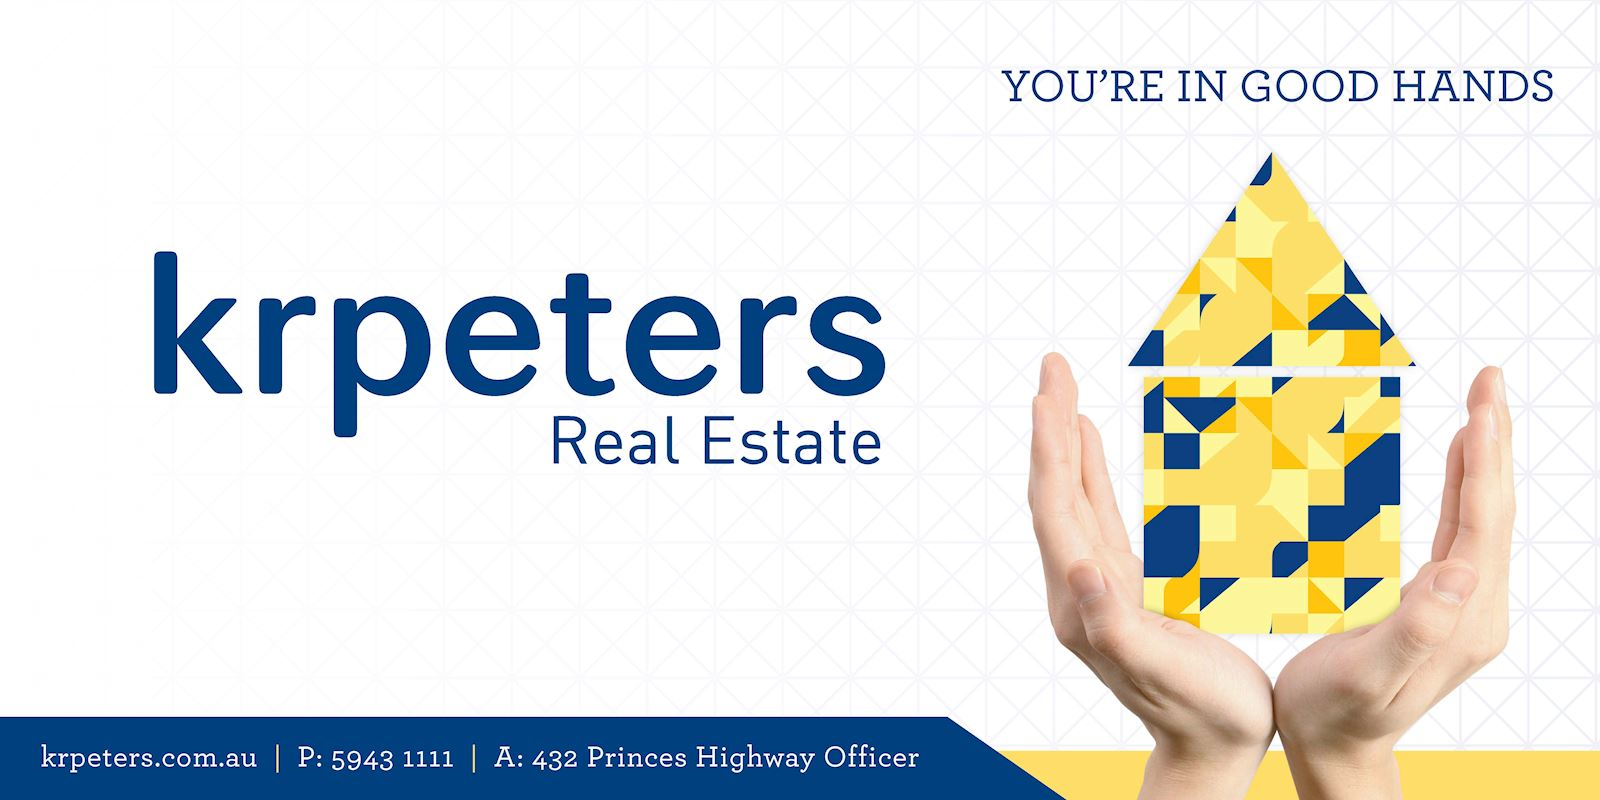 Krpeters Real Estate